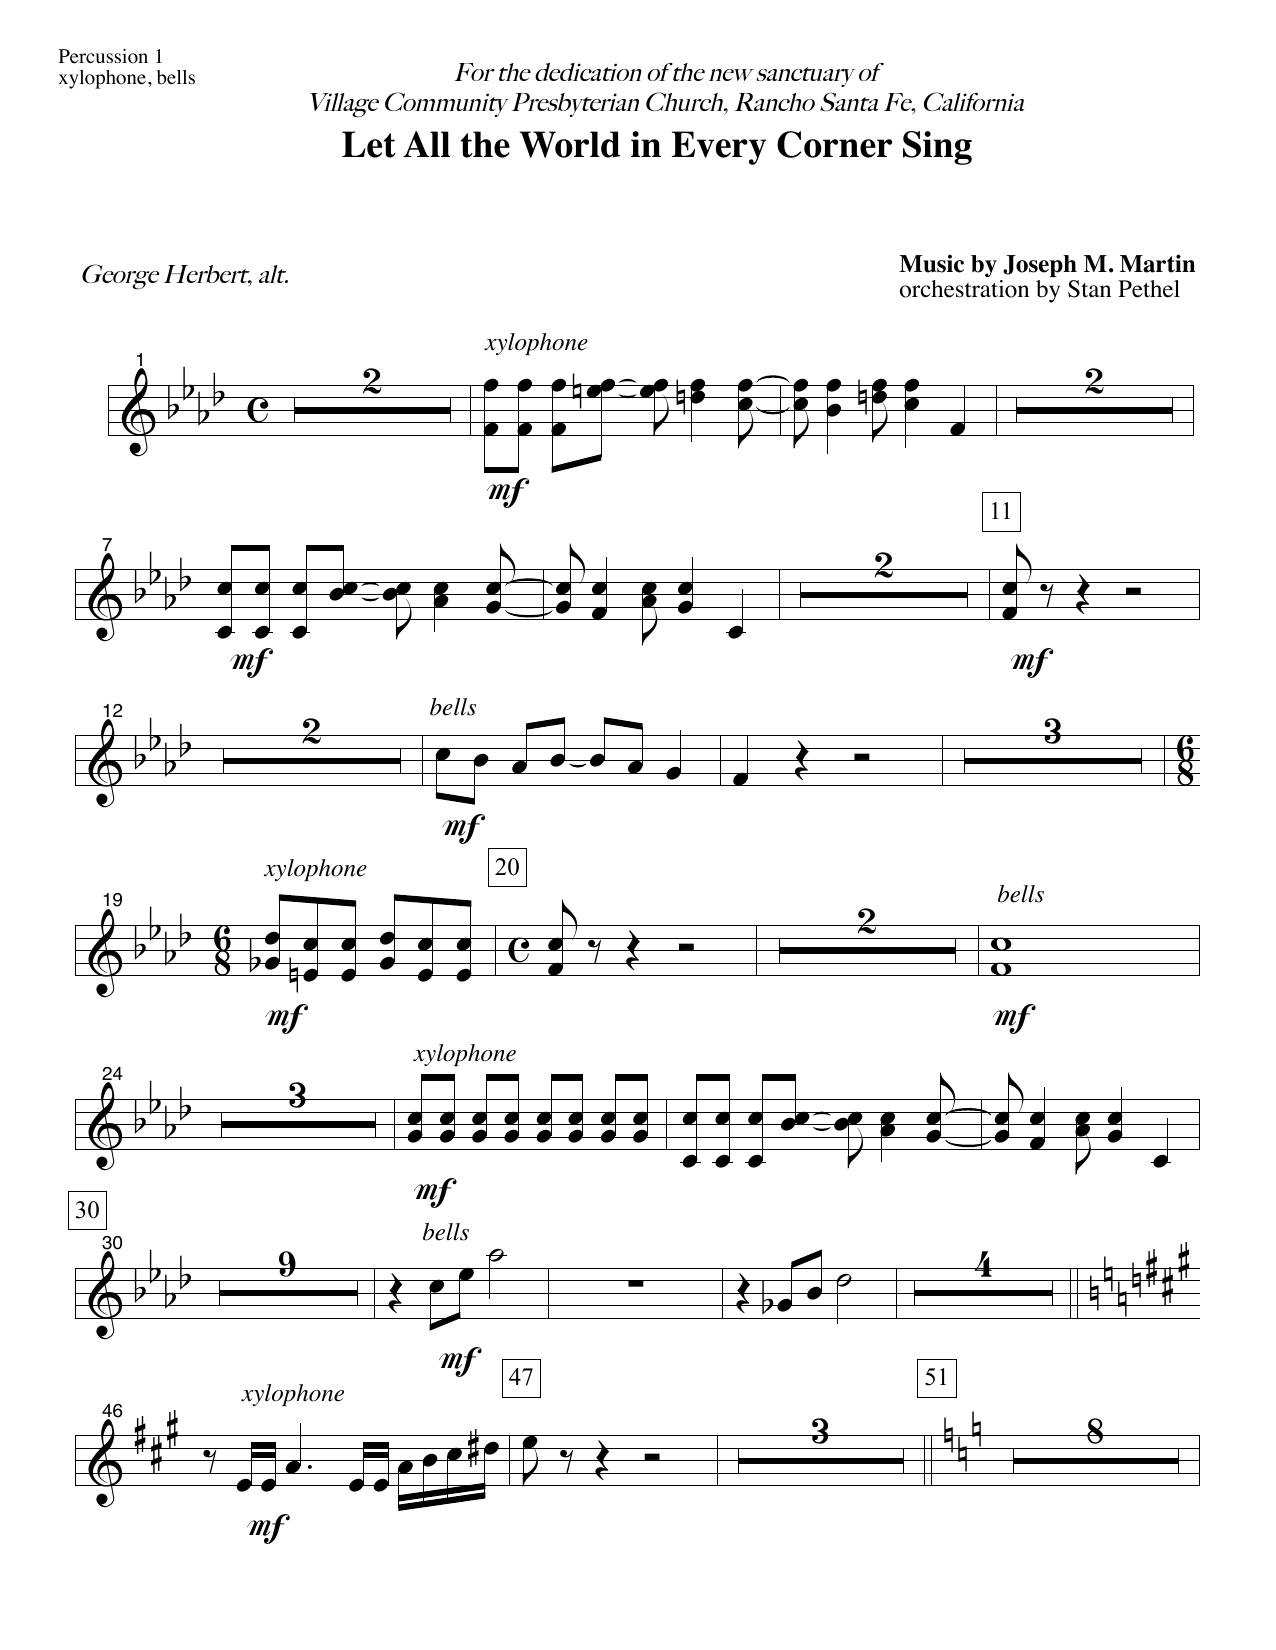 Let All the World in Every Corner Sing - Percussion 1 (Choir Instrumental Pak)